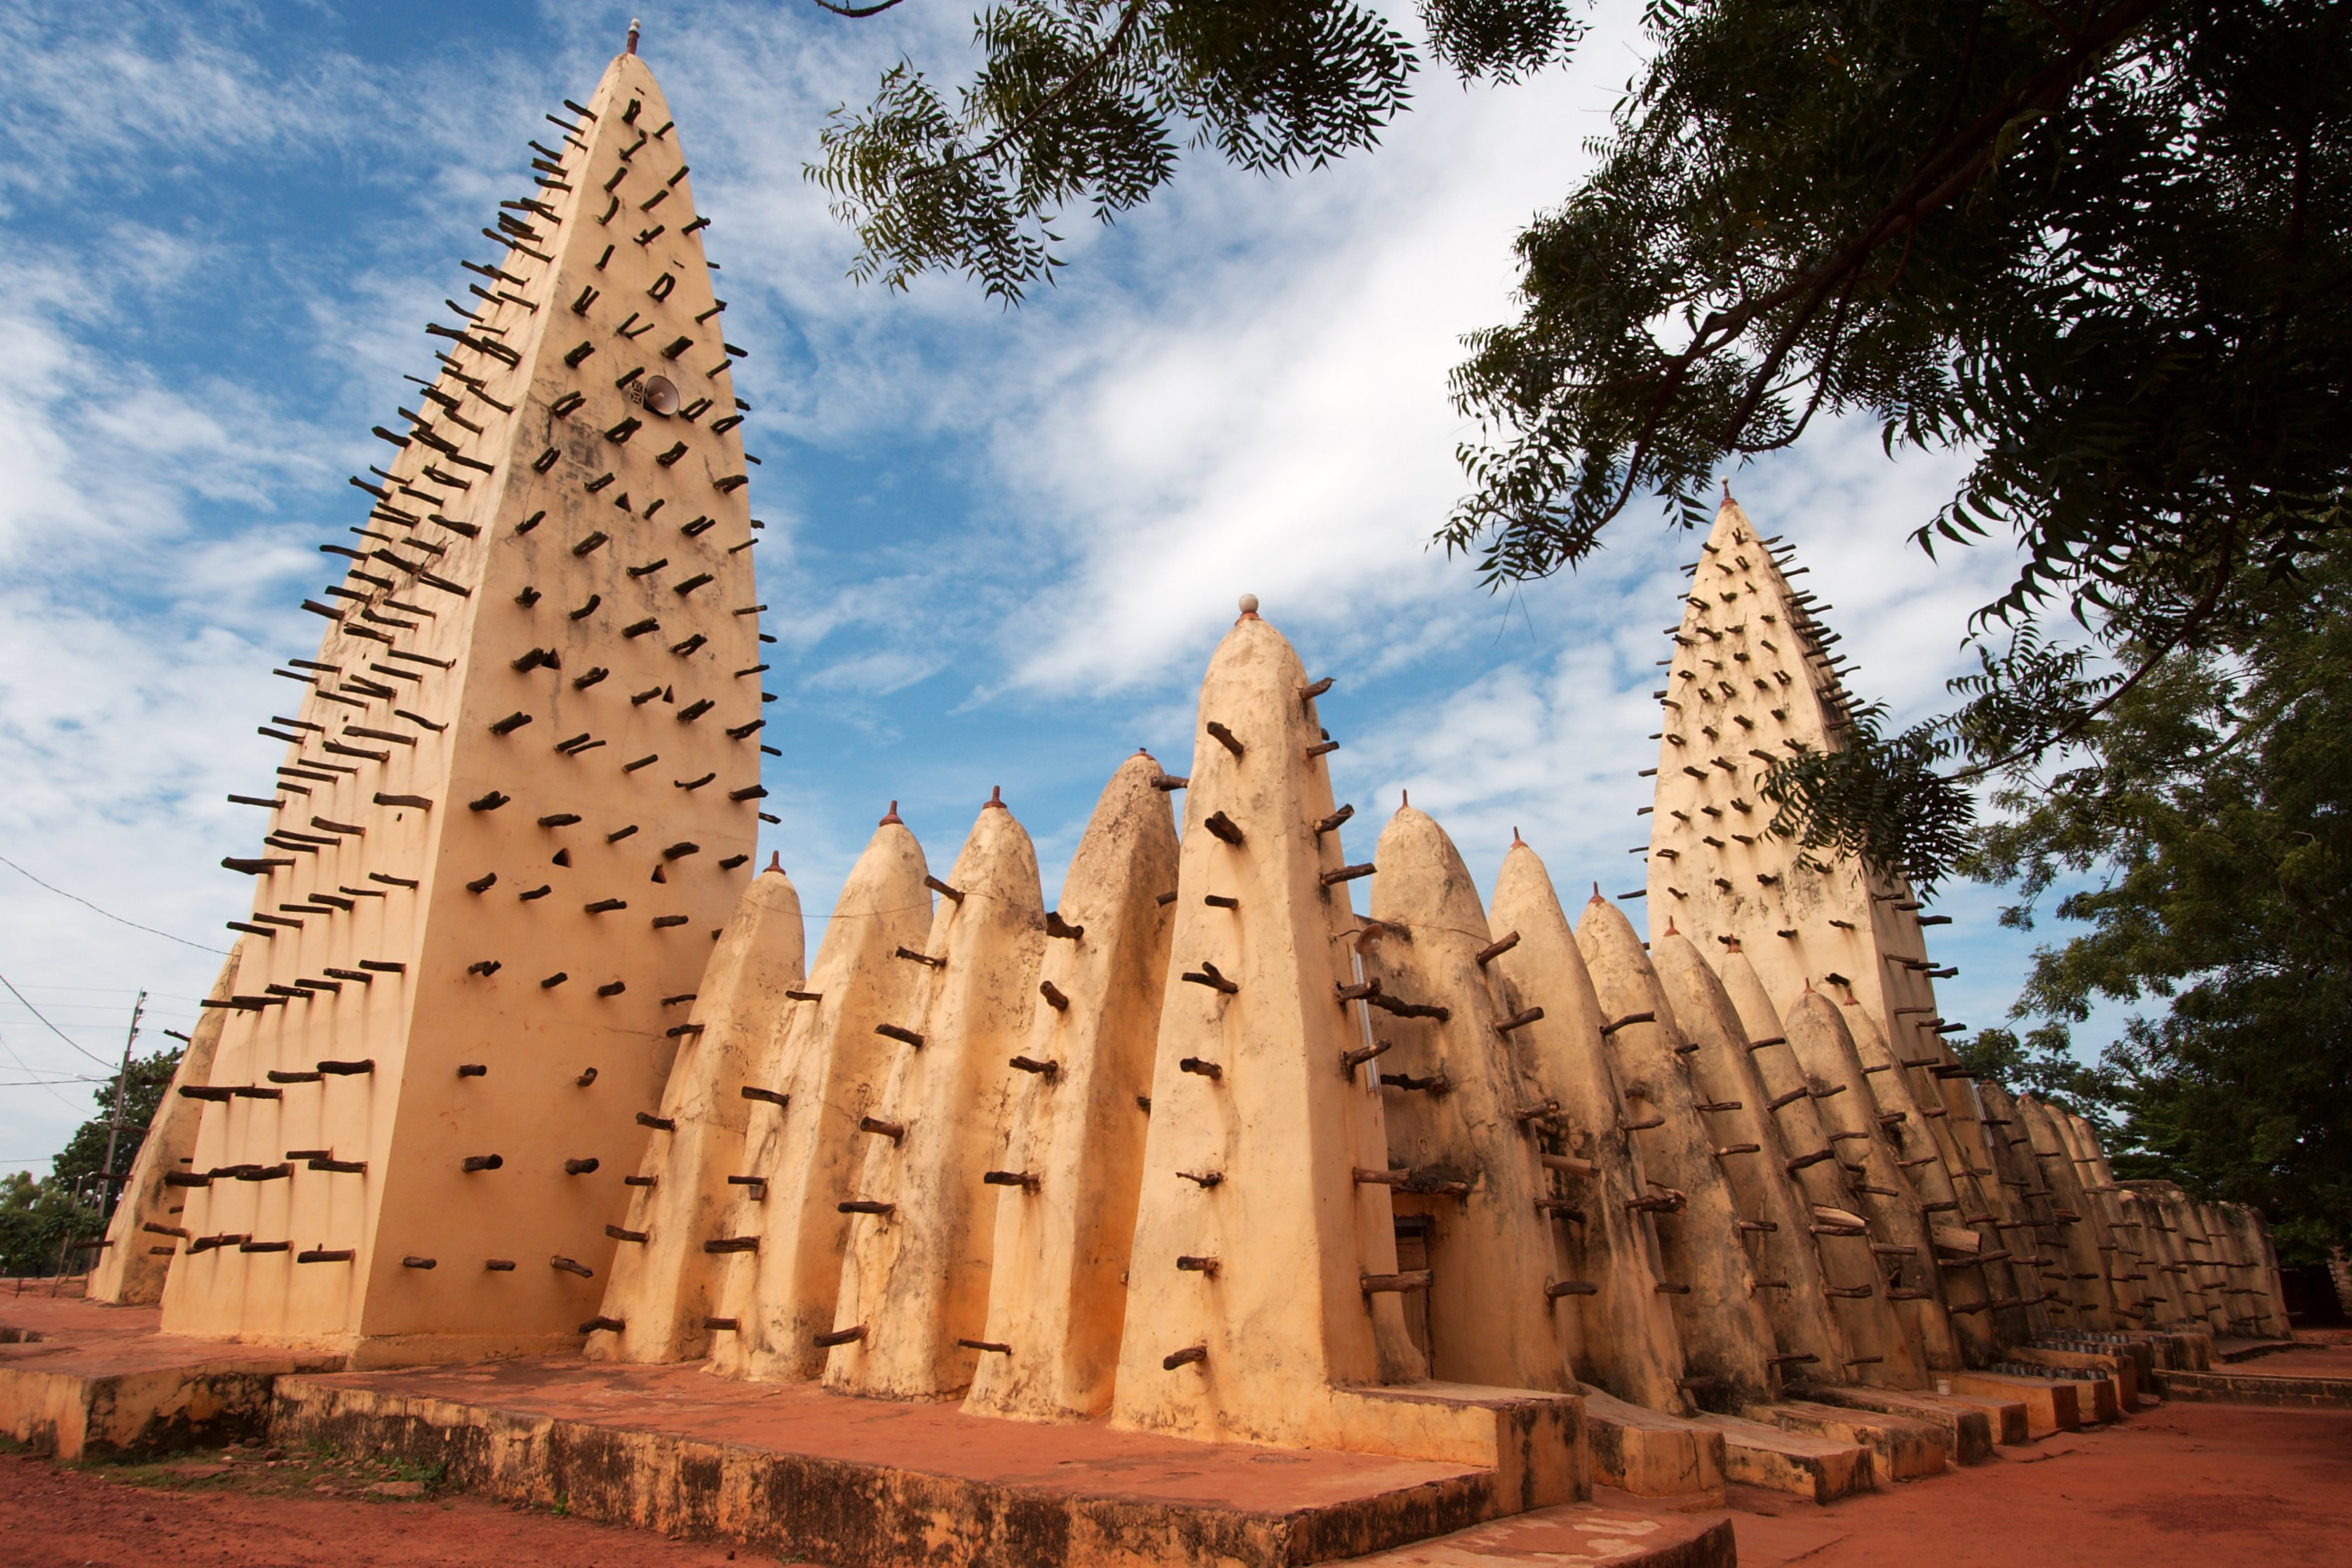 The Grand Mosque of Bobo-Dioulasso, Burkina Faso; photo: Flickr, qiv